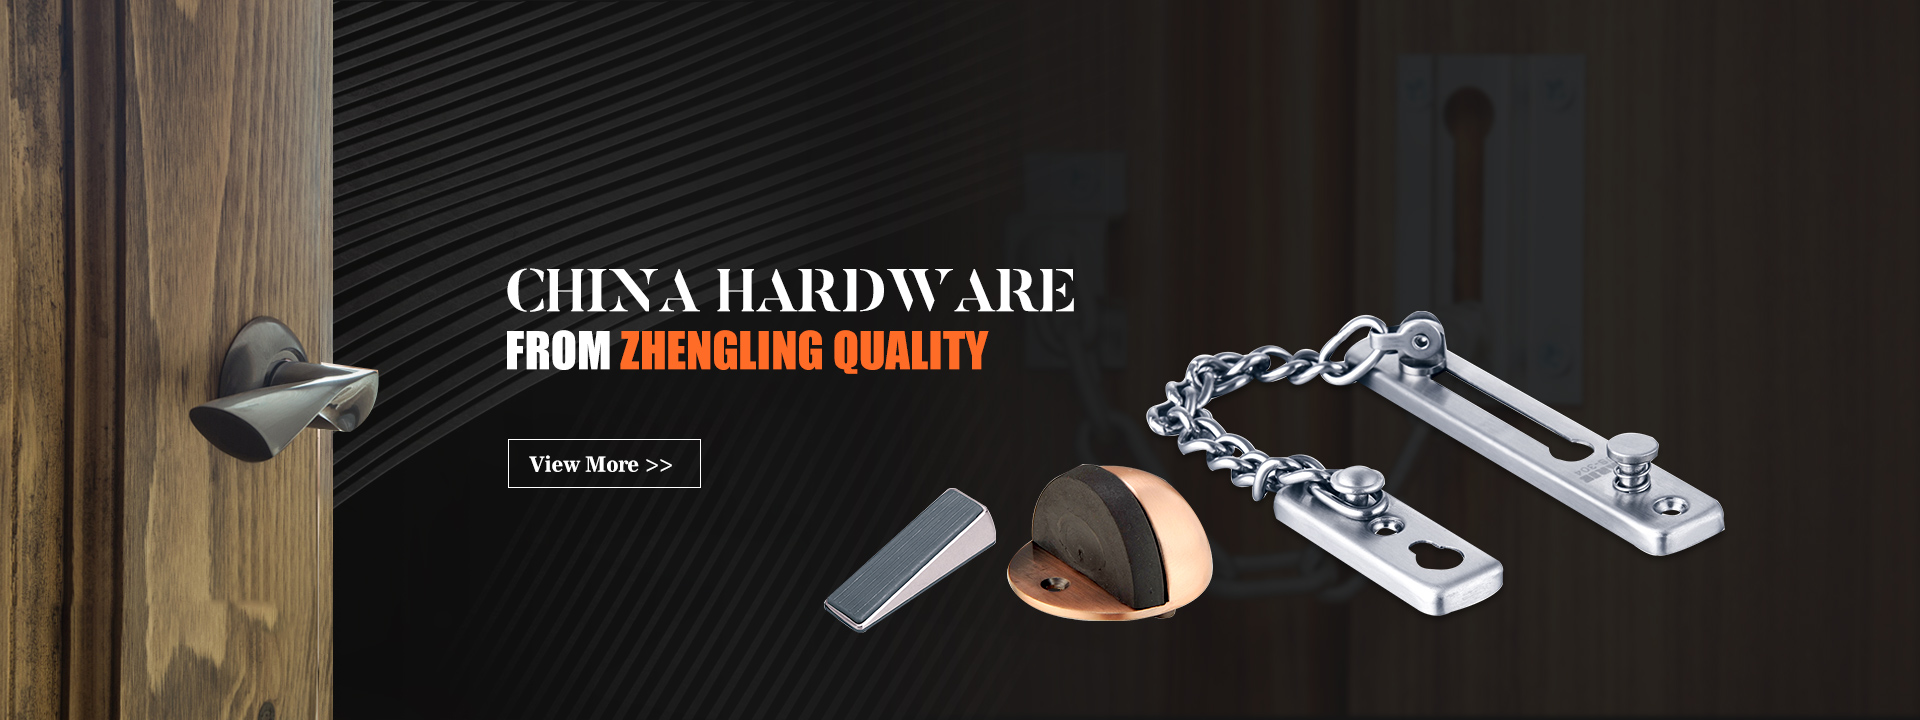 China Hardware from zhengling quality